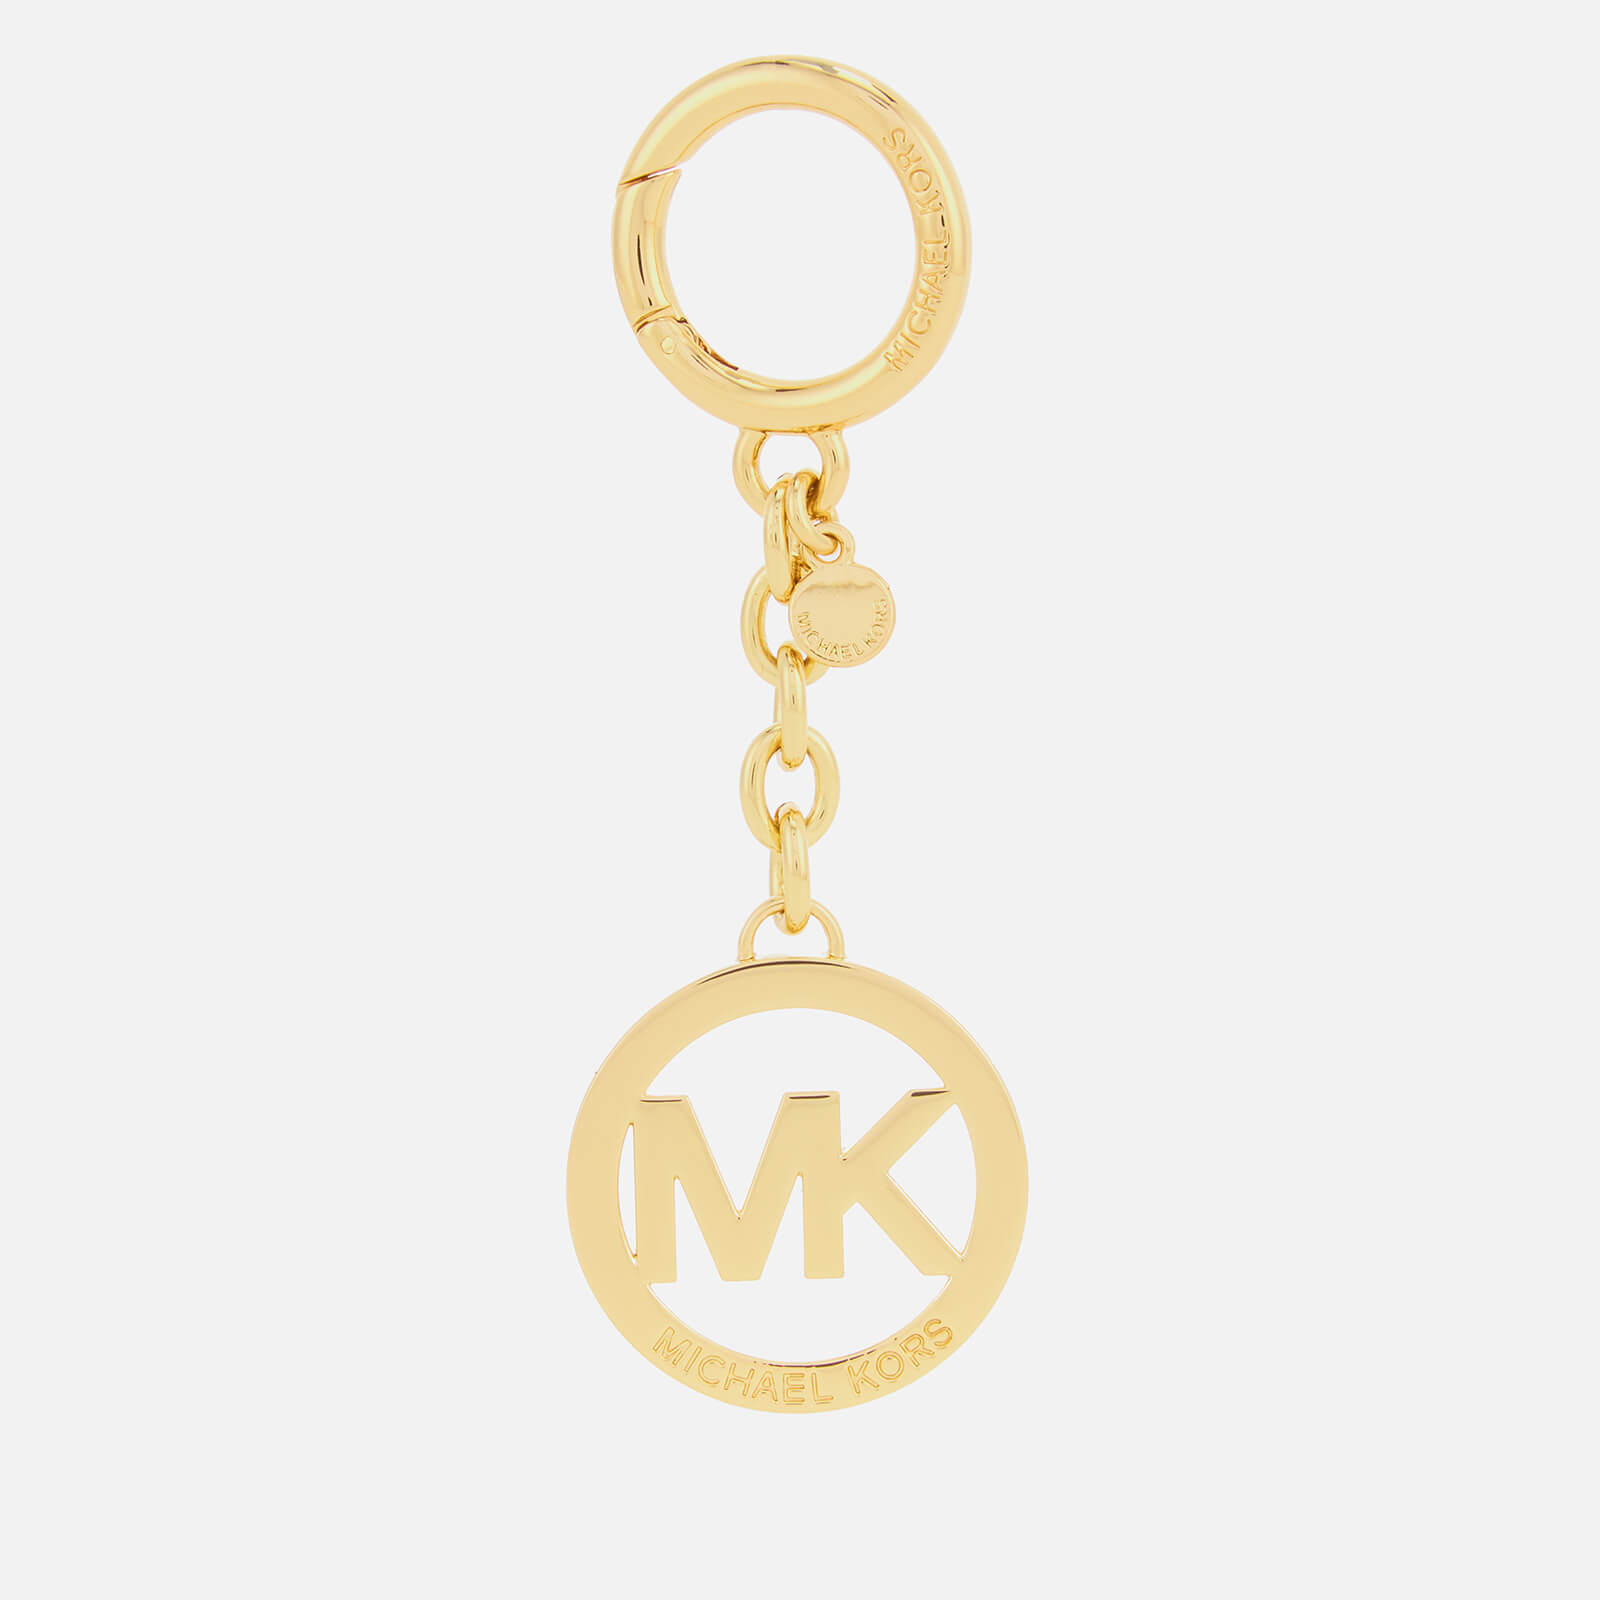 297a392f36cc MICHAEL MICHAEL KORS Women s MK Key Fob - Gold - Free UK Delivery ...